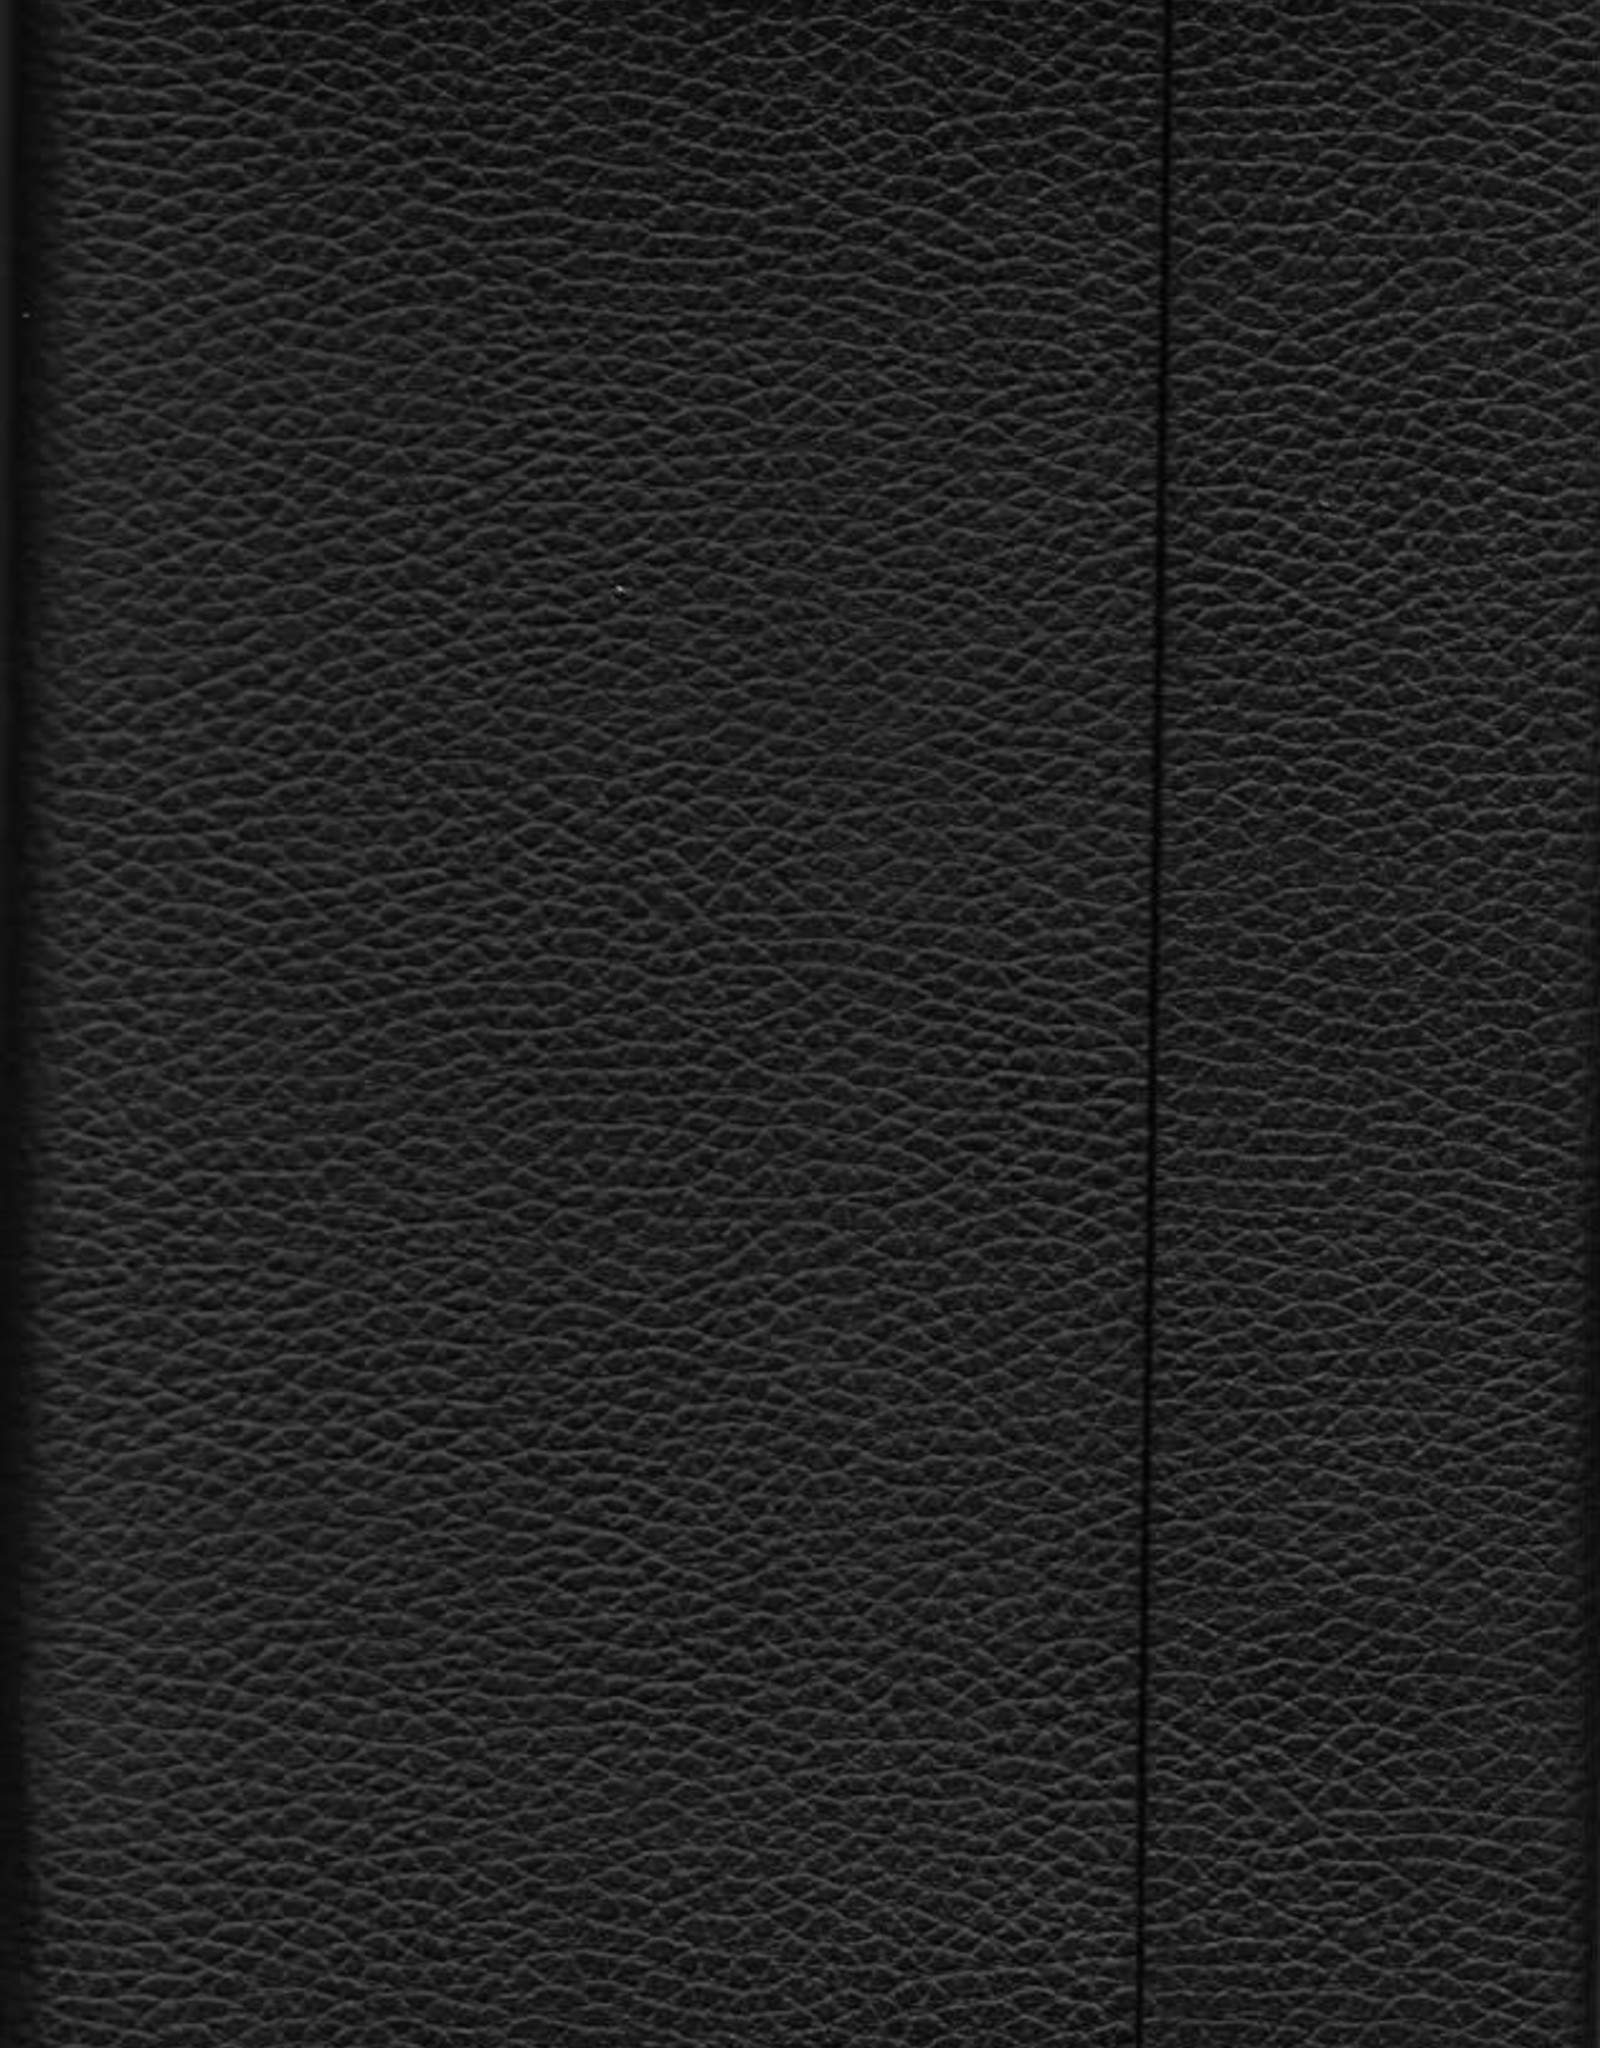 """Black, Faux Leather, Journal with Grid, Dot Grid, and Blank Pages, 192 white pages, 6.25"""" x 8.5"""", 80gsm, Magnetic Flap"""